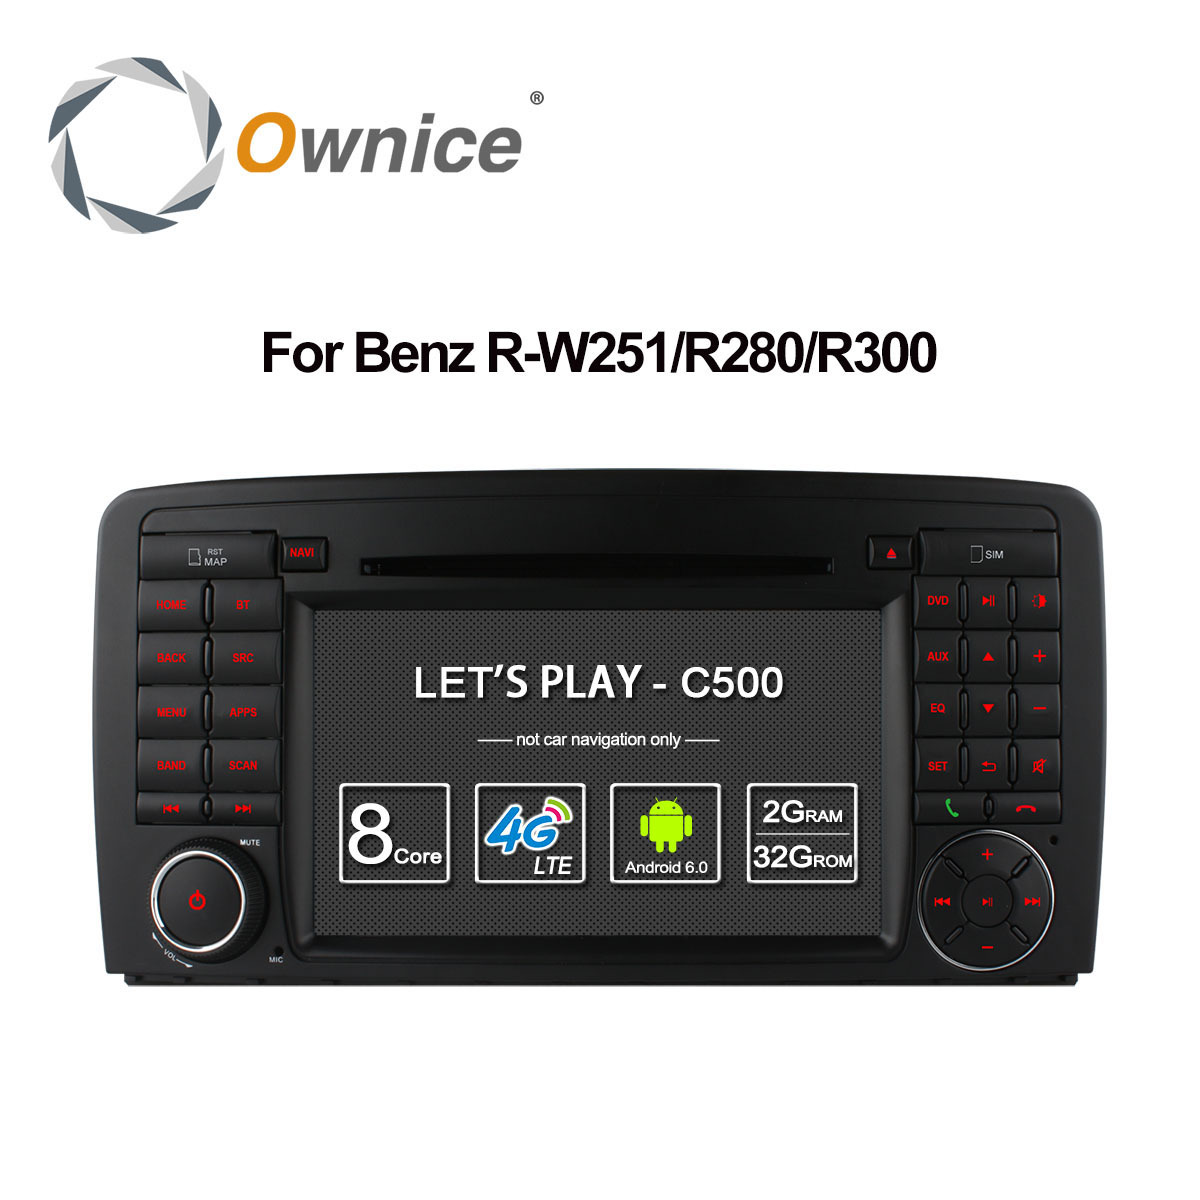 Ownice 4G SIM LTE 8 Core Android 6.0 Car DVD Player for Mercedes R Class W251 R280 R300 R320 R350 R500 with Radio GPS 32G ROM ownice c500 android 6 0 octa 8 core 4g sim lte car dvd player for great wall hover h3 h5 with gps navigation radio 32g rom